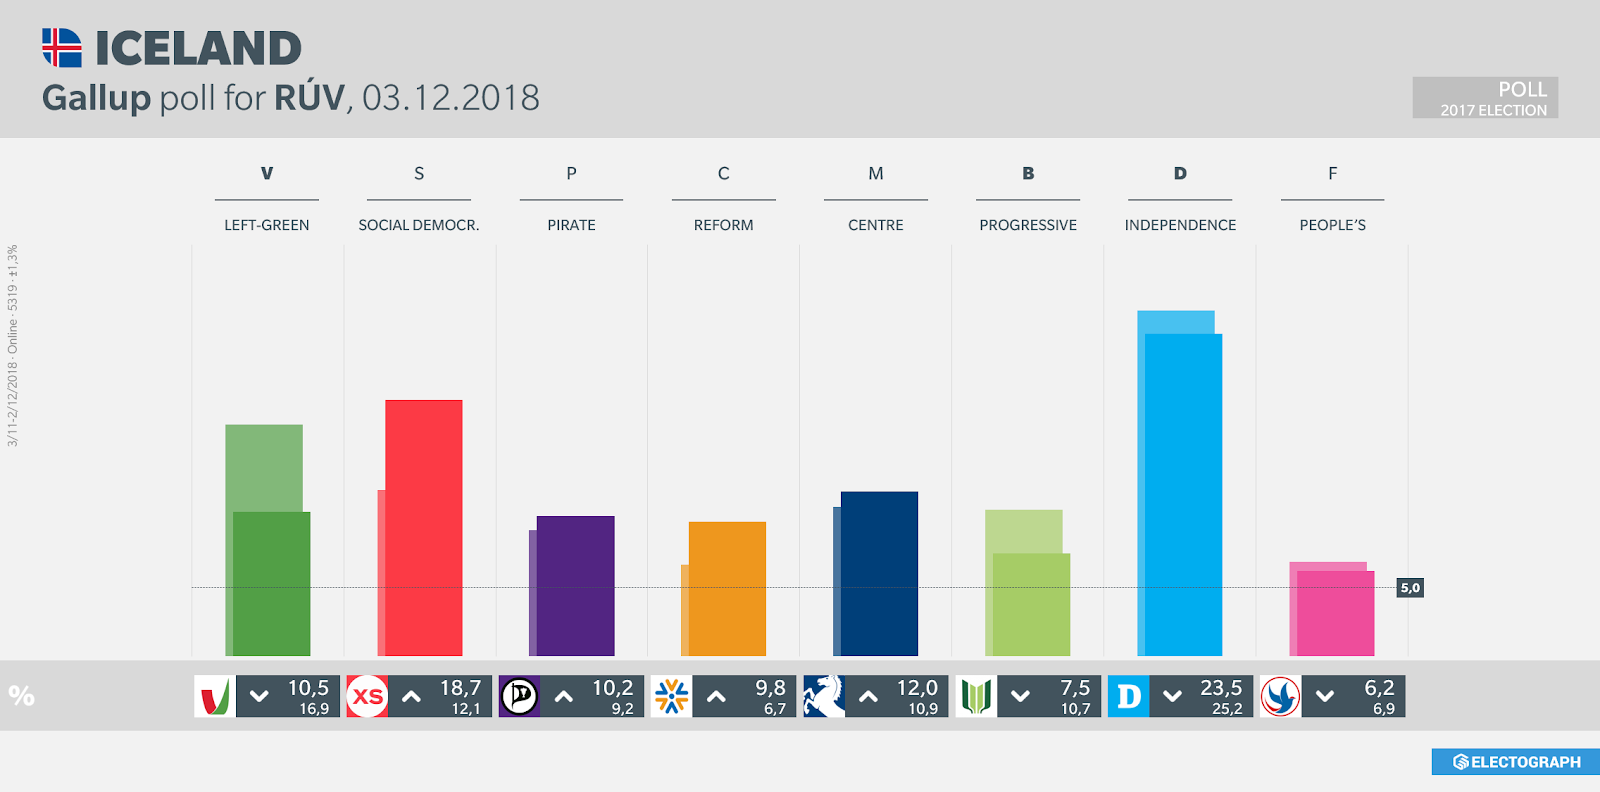 ICELAND: Gallup poll chart for RÚV, 3 December 2018